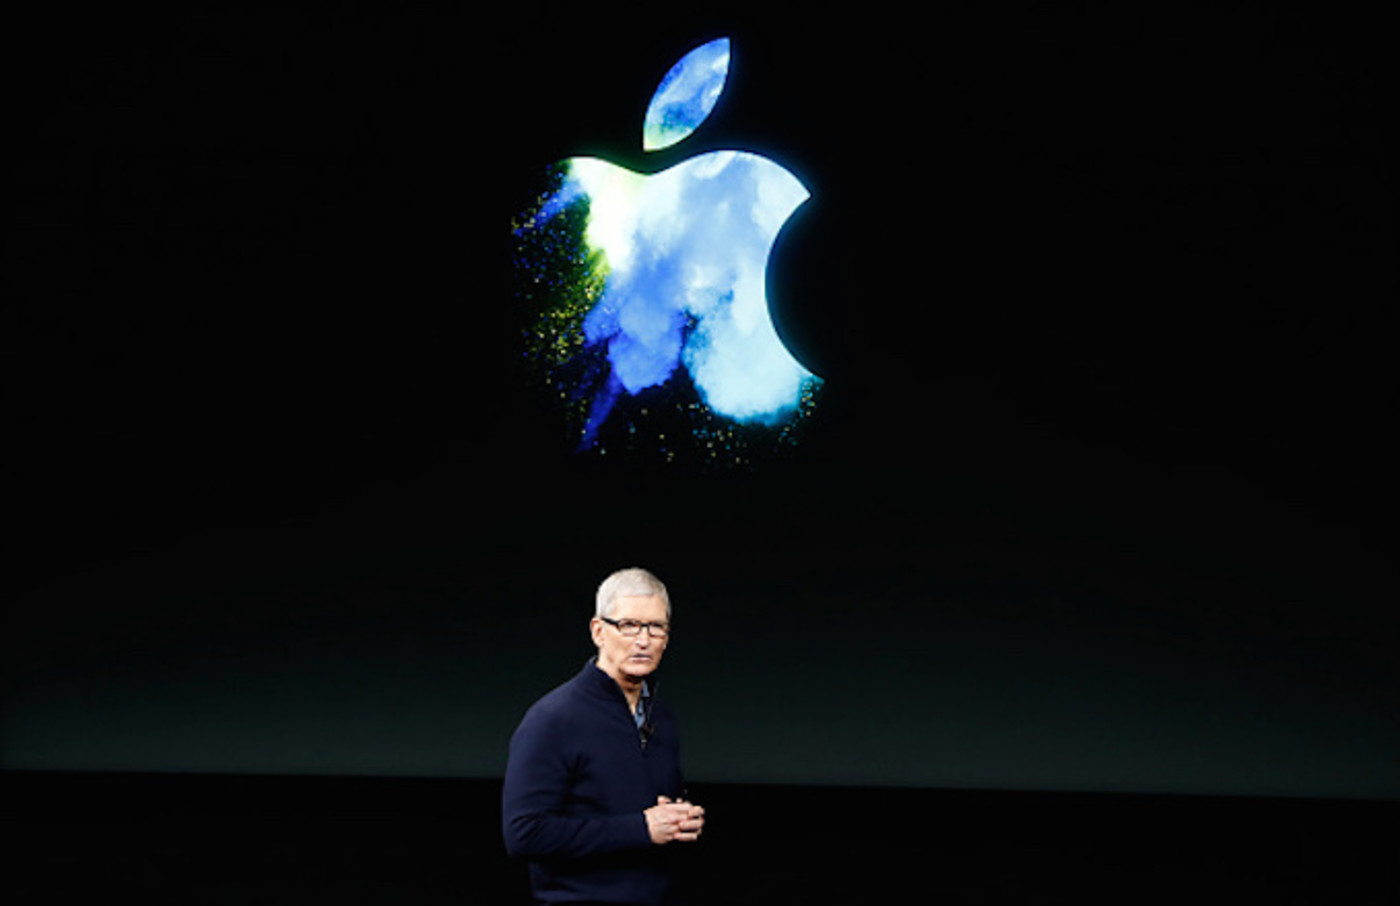 Tim Cook speaks on stage during an Apple product launch event